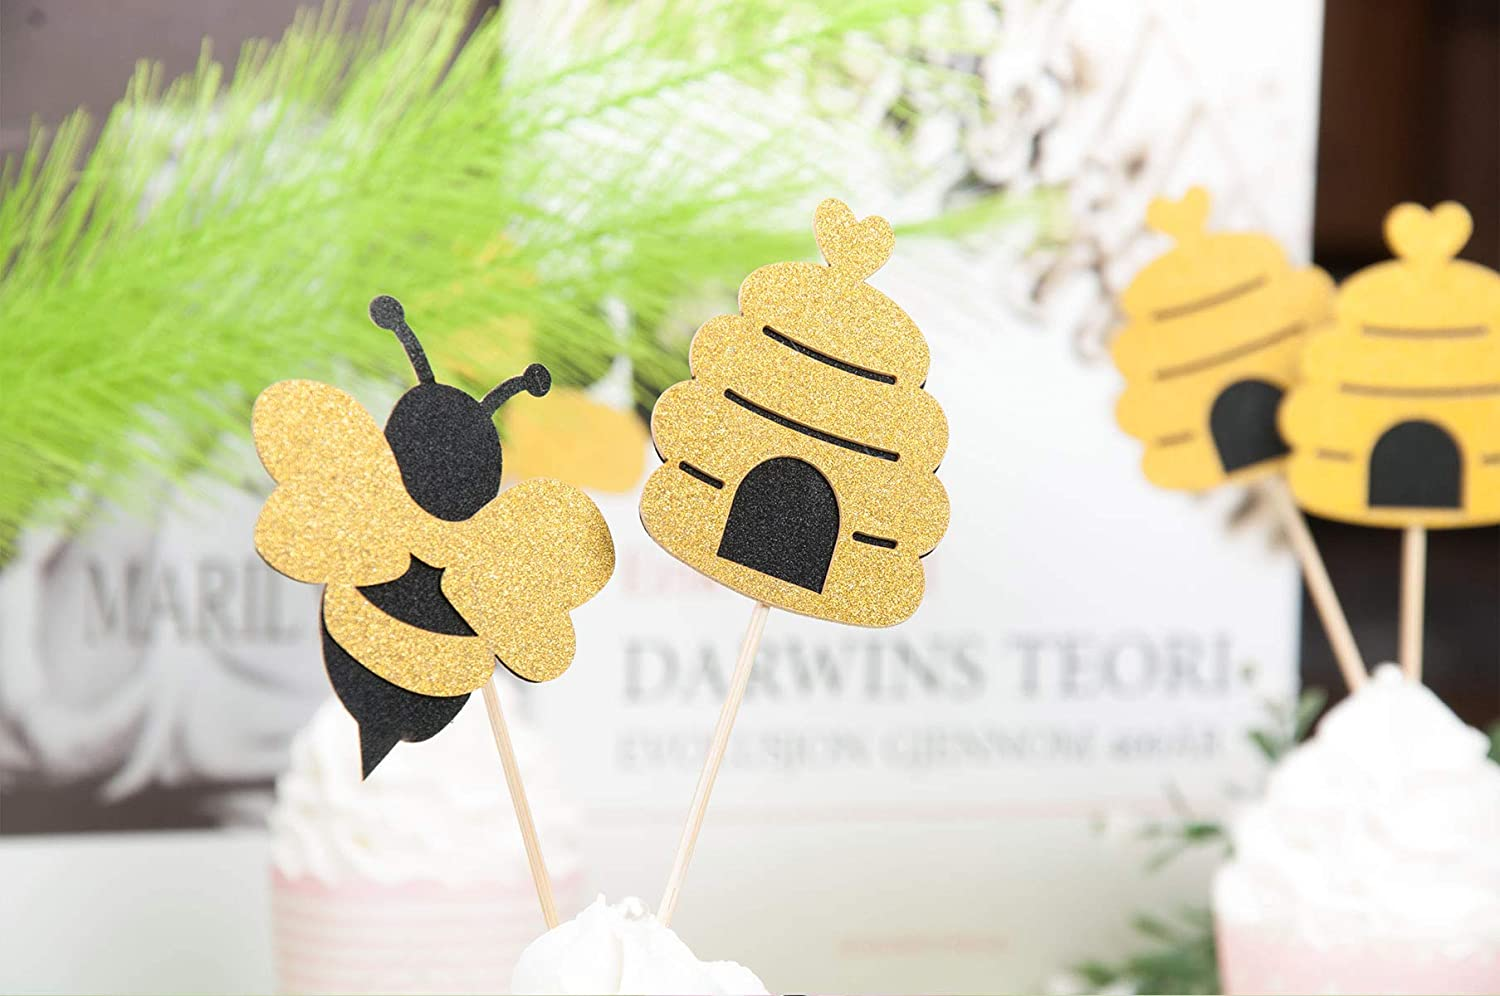 Lauren 48 Pcs Glitter Bumble Bee Cupcake Toppers Fruit Decorations for Bumble Bee Gender Reveal Baby Shower Birthday Party Decor